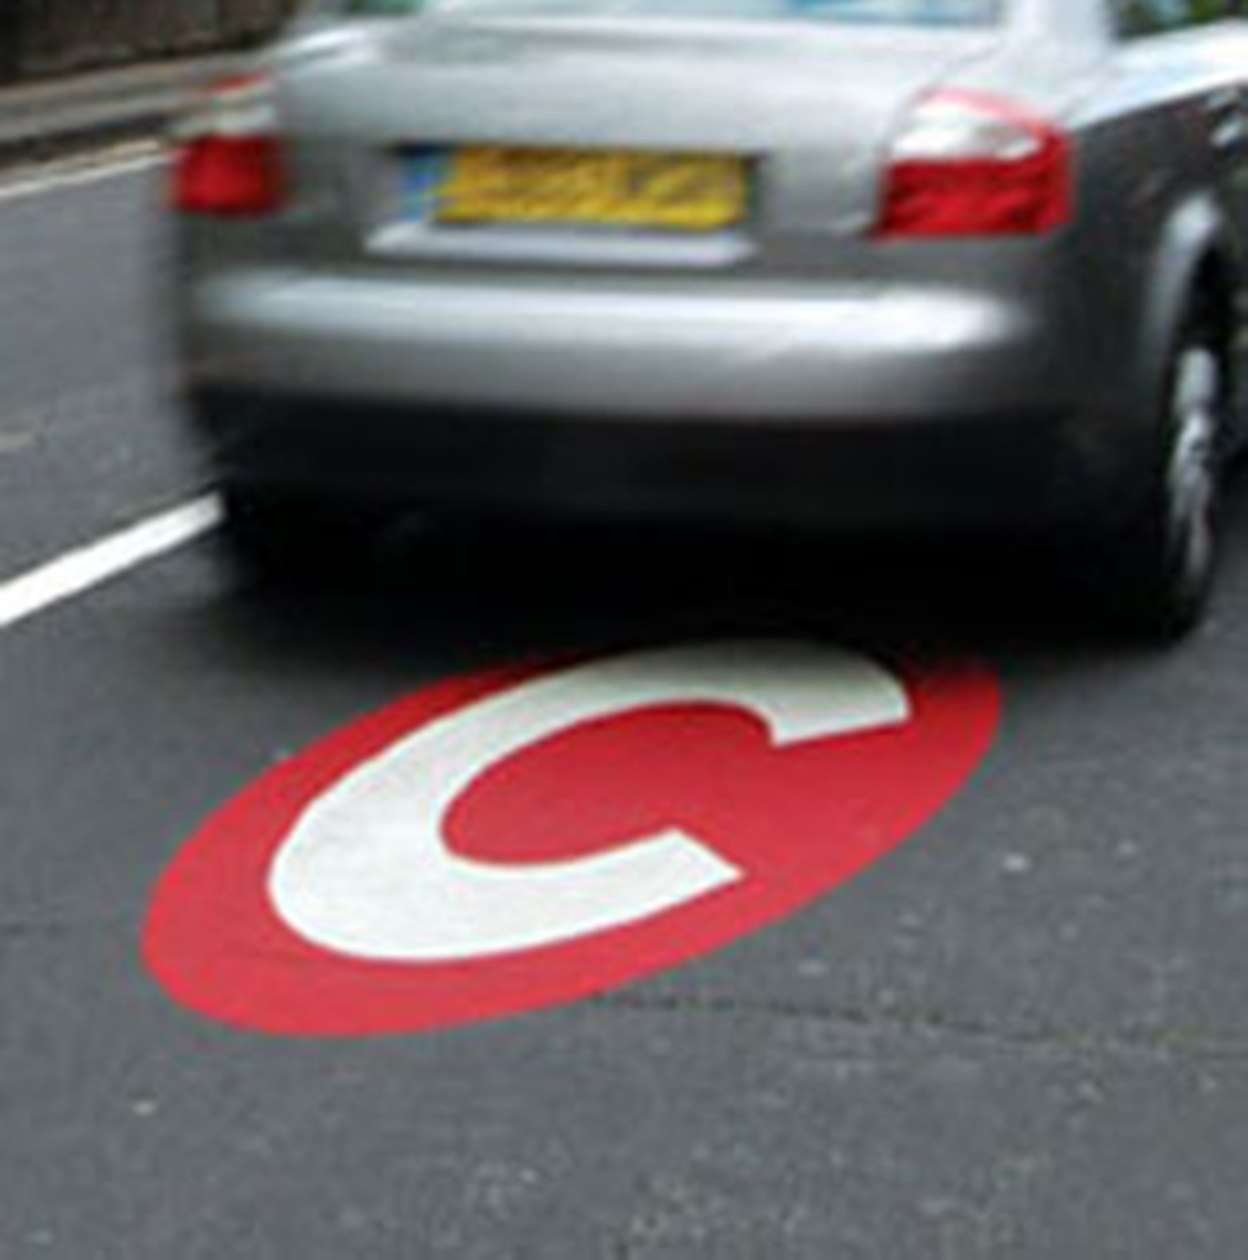 The changes, due to come in to effect on June 16, are the first price increases to the Congestion Charge since 2